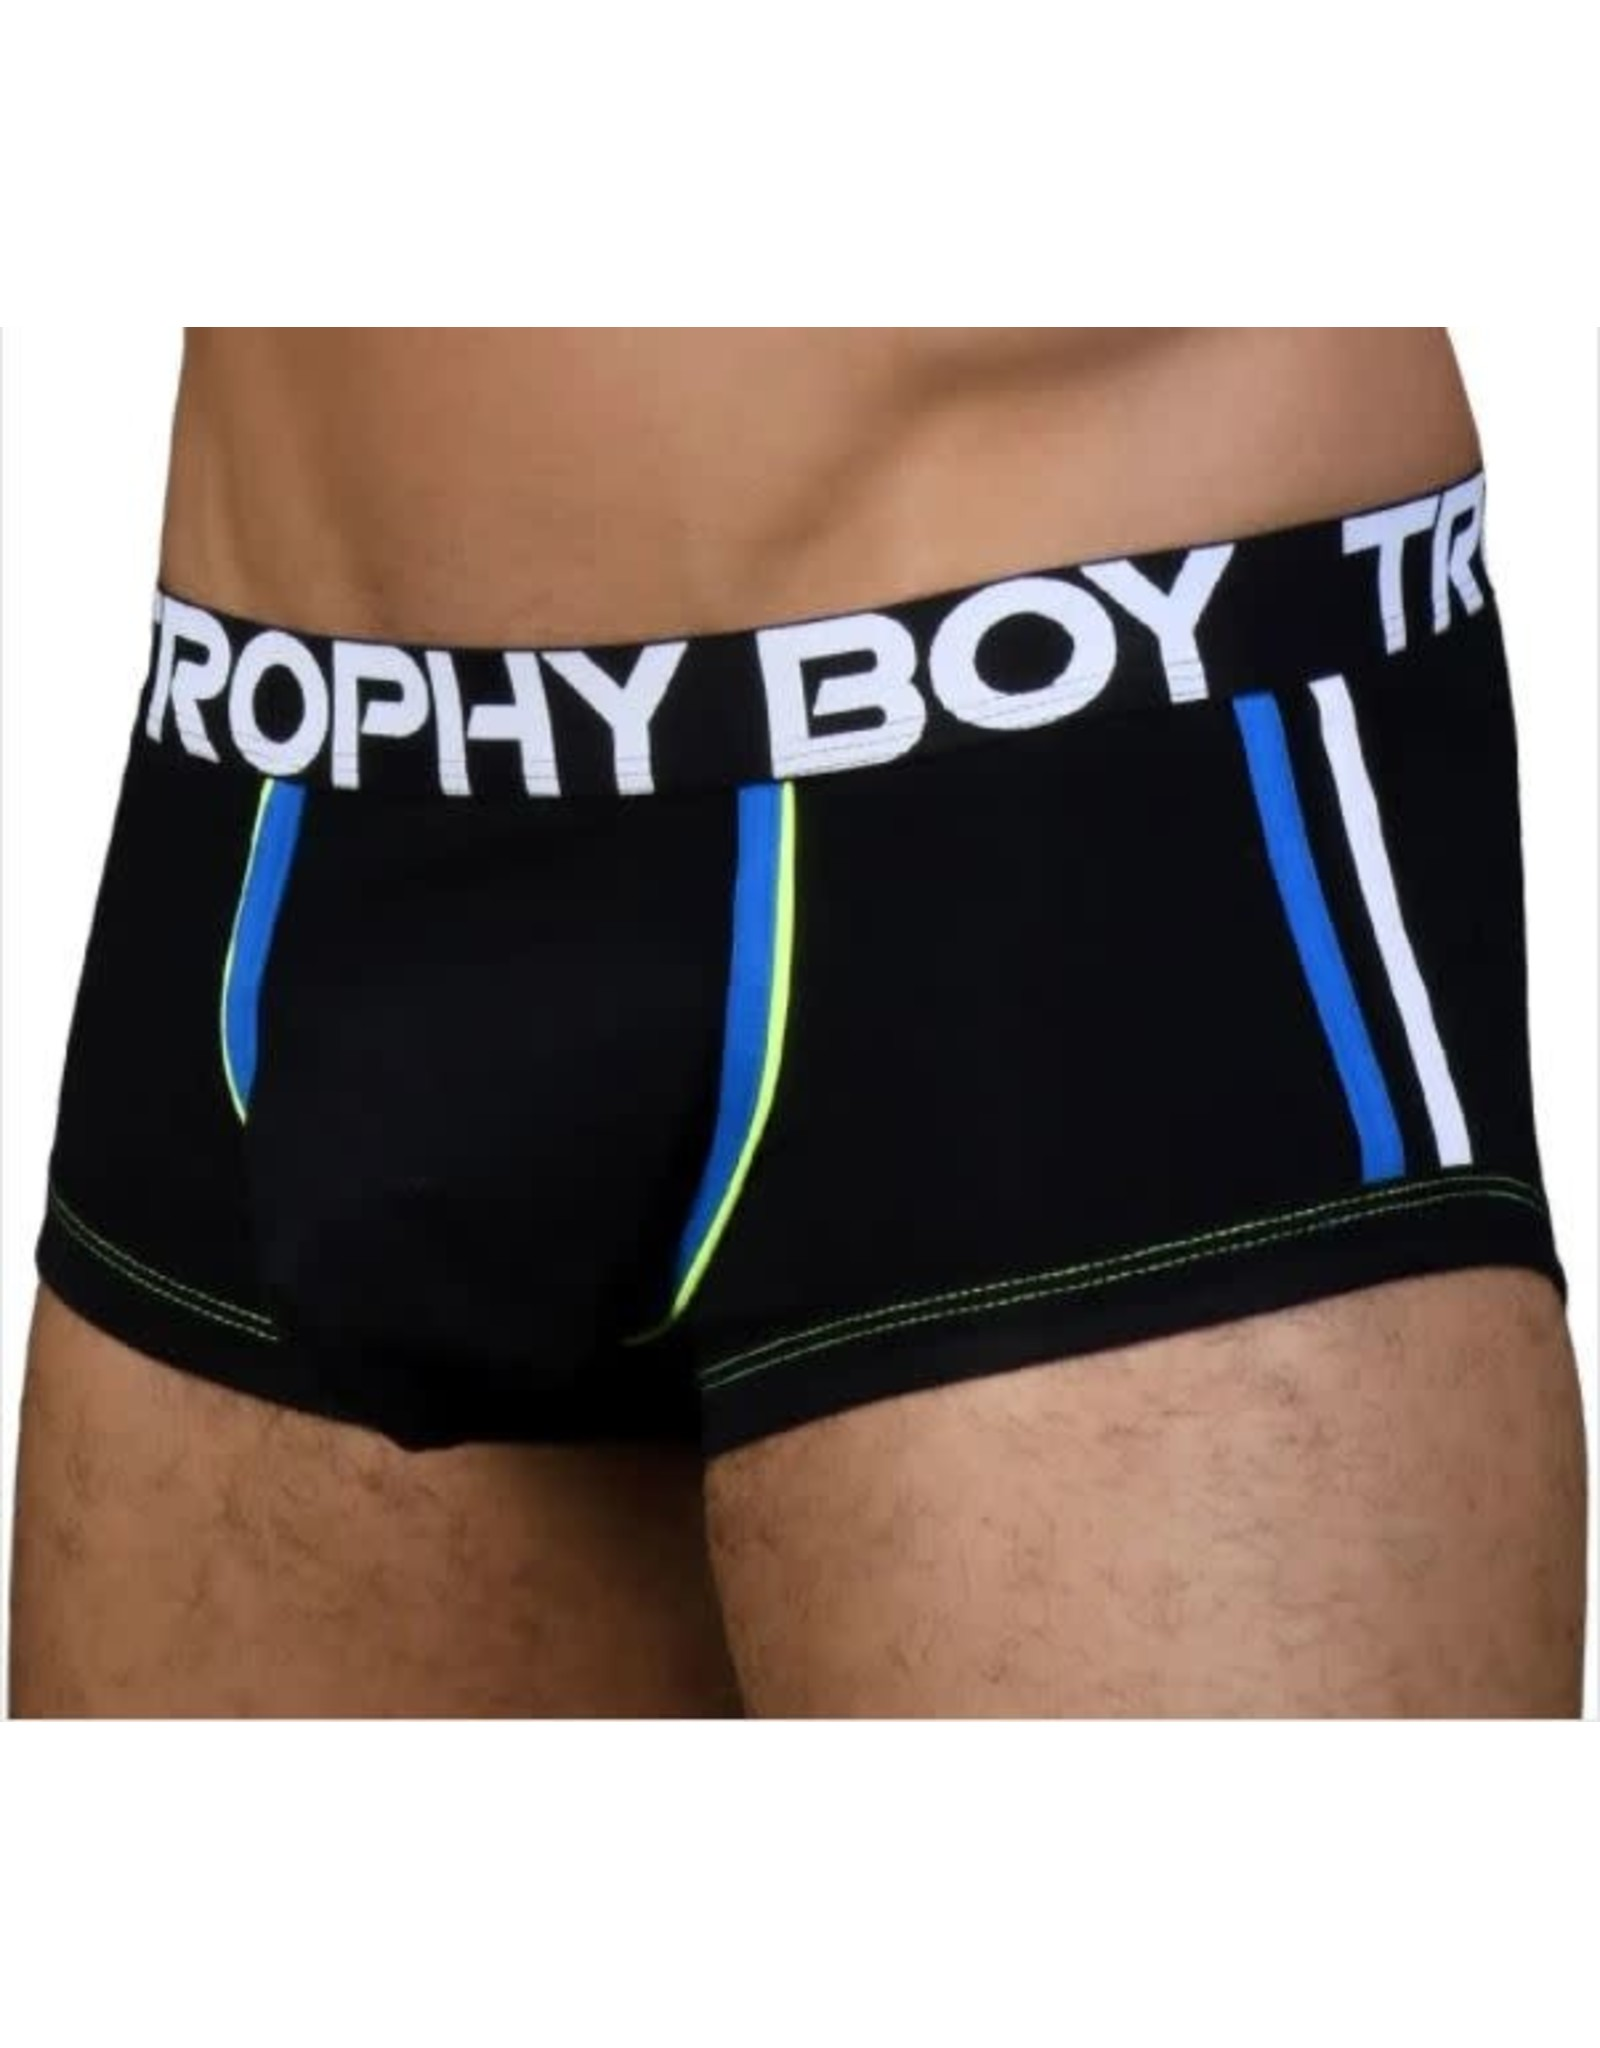 ANDREW CHRISTIAN ANDREW CHRISTIAN TROPHY BOY, XS